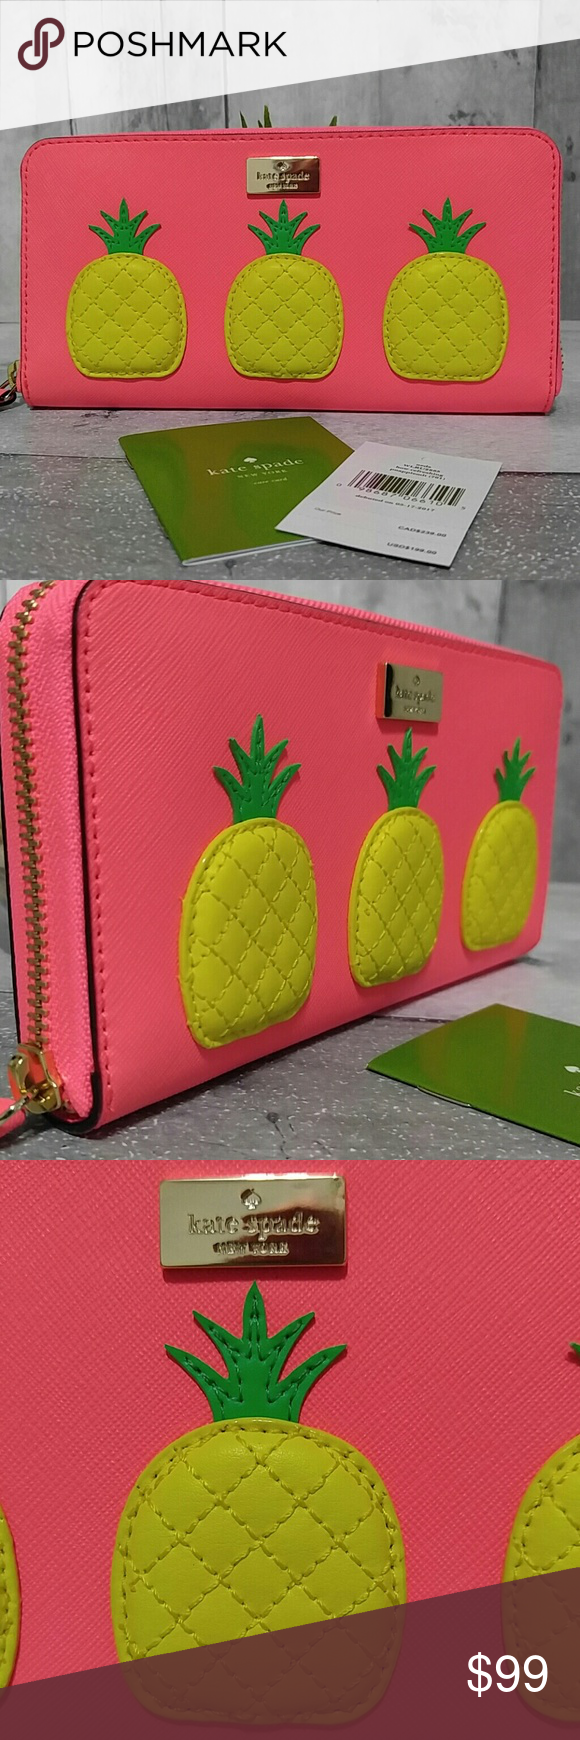 4721a1c539f7 Kate Spade 3D Pineapple Neda Wallet NWT Absolutely adorable New w tags Kate  Spade how refreshing